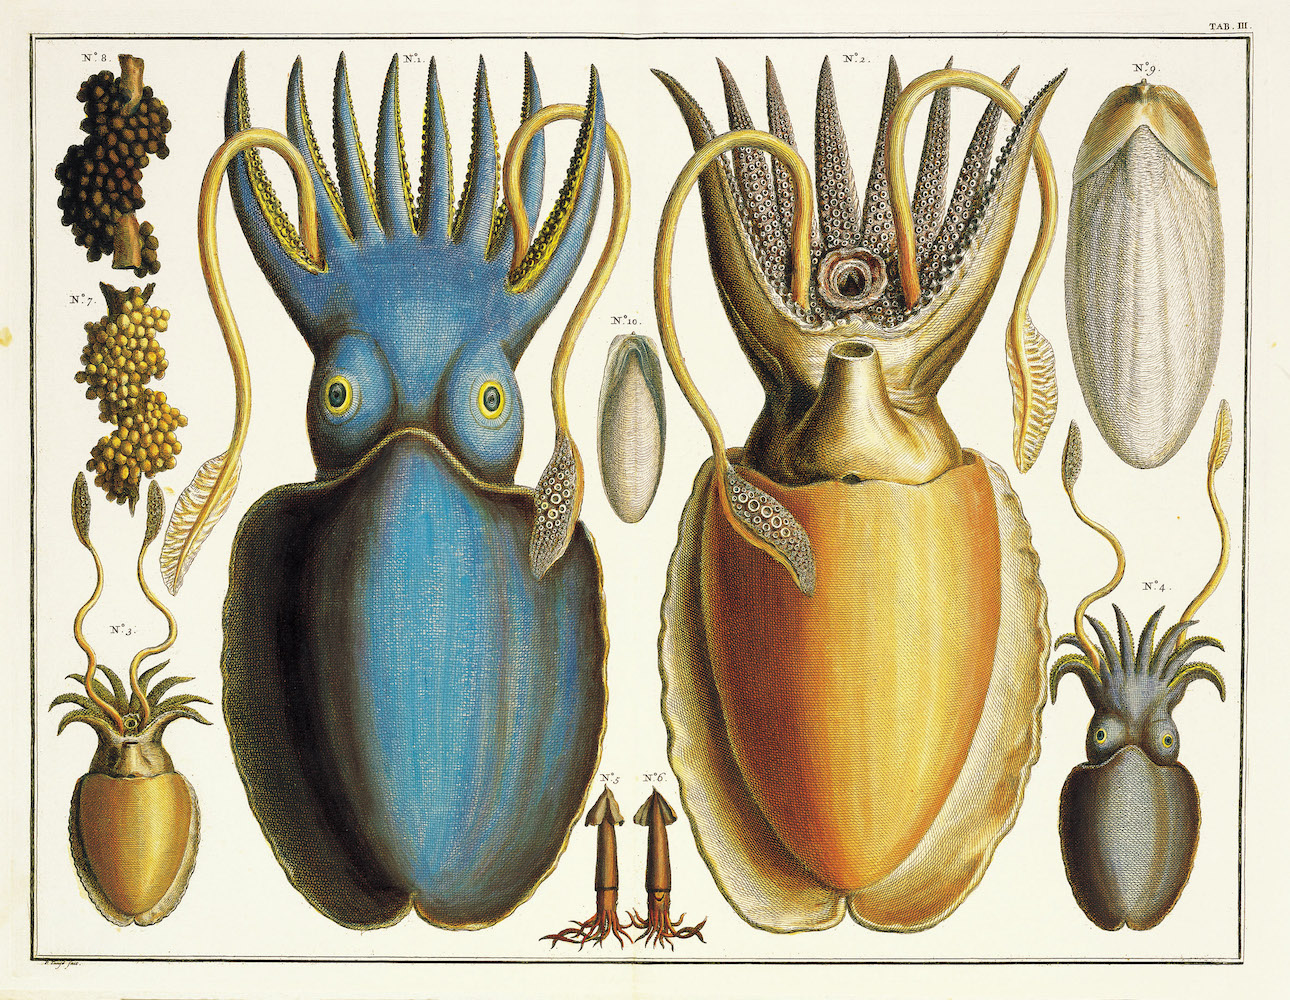 Wonderful Albertus Sebau0027s Cabinet Of Natural Curiosities. By Albertus Seba